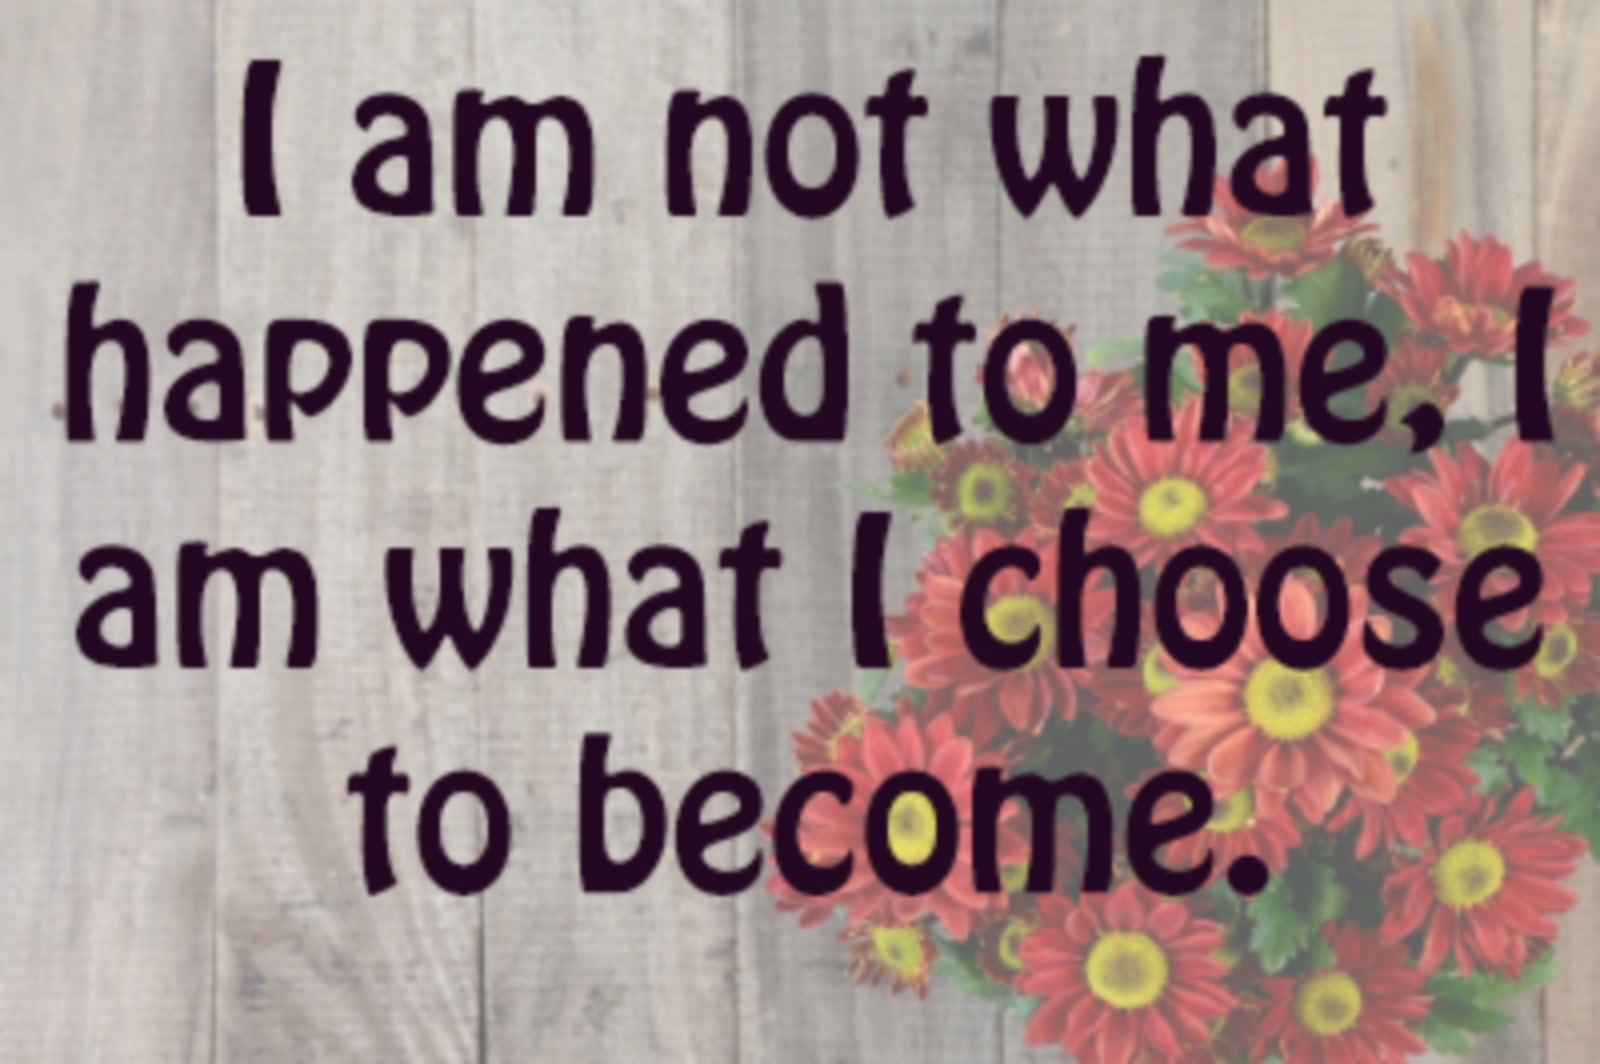 """I am not what happened to me, I am what I choose to become."" - C.G. Jung"